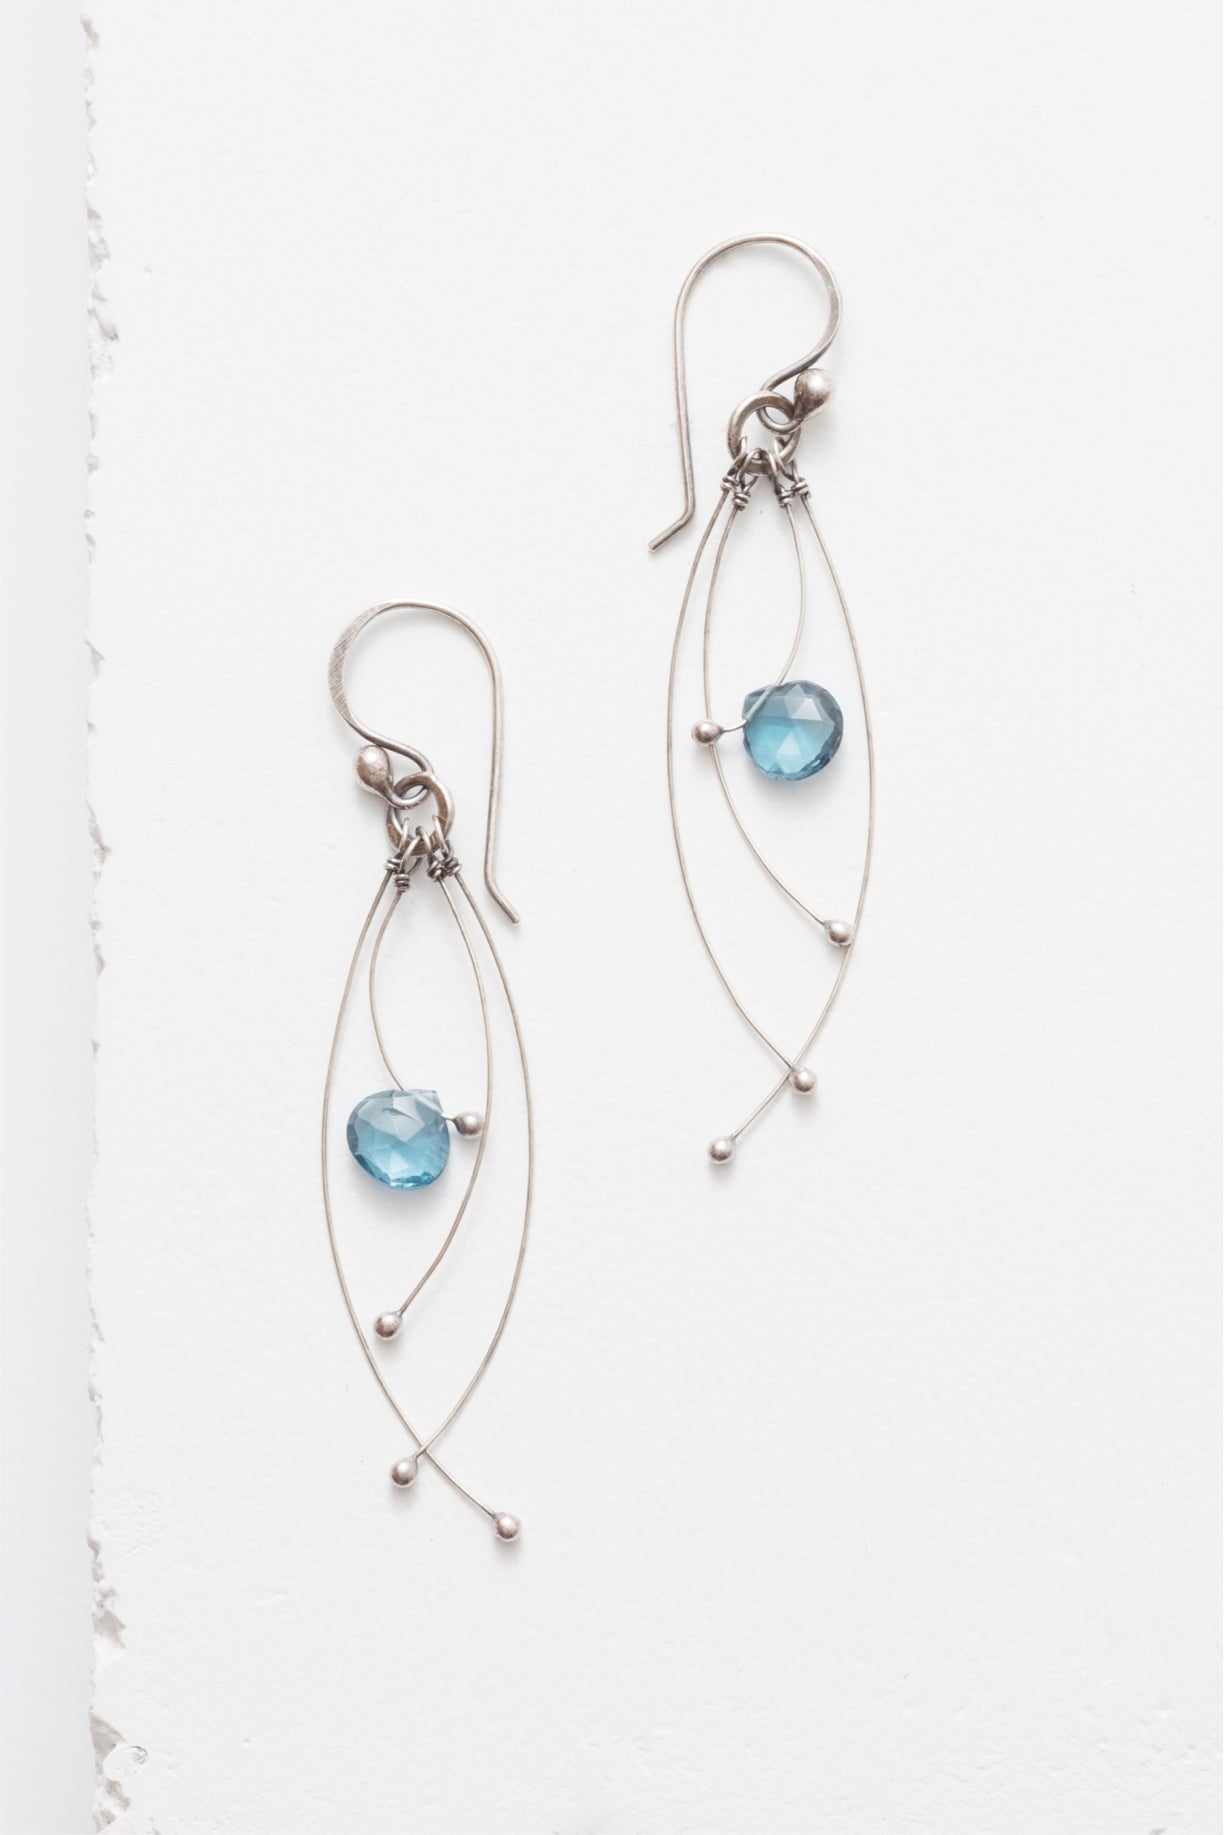 Tickle Earrings with Gemstone